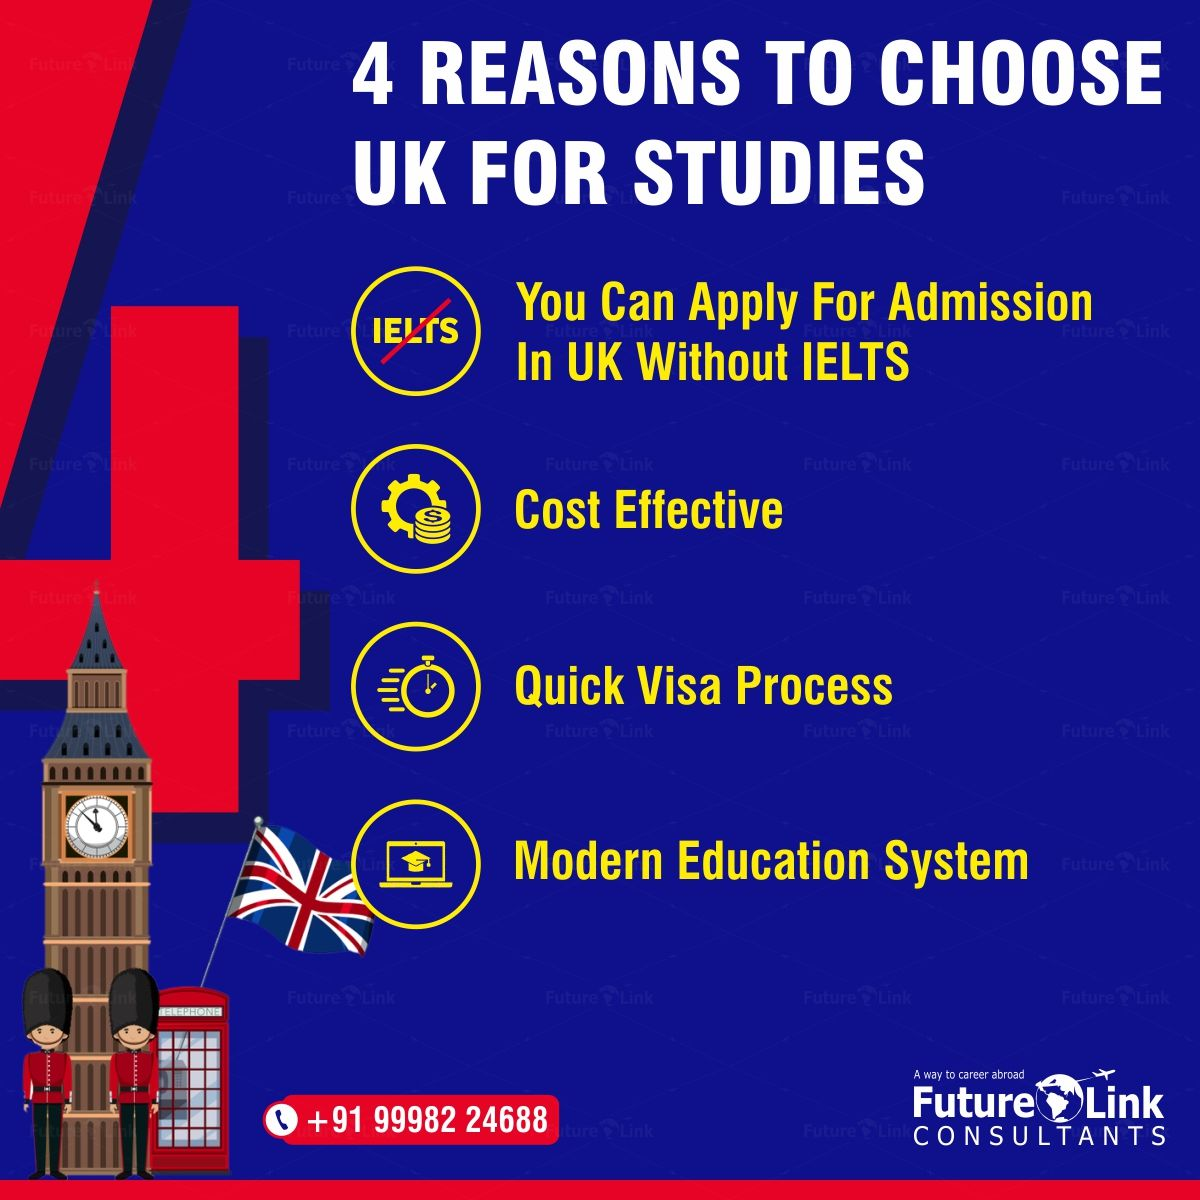 Here's why you should choose UK for further studies! To